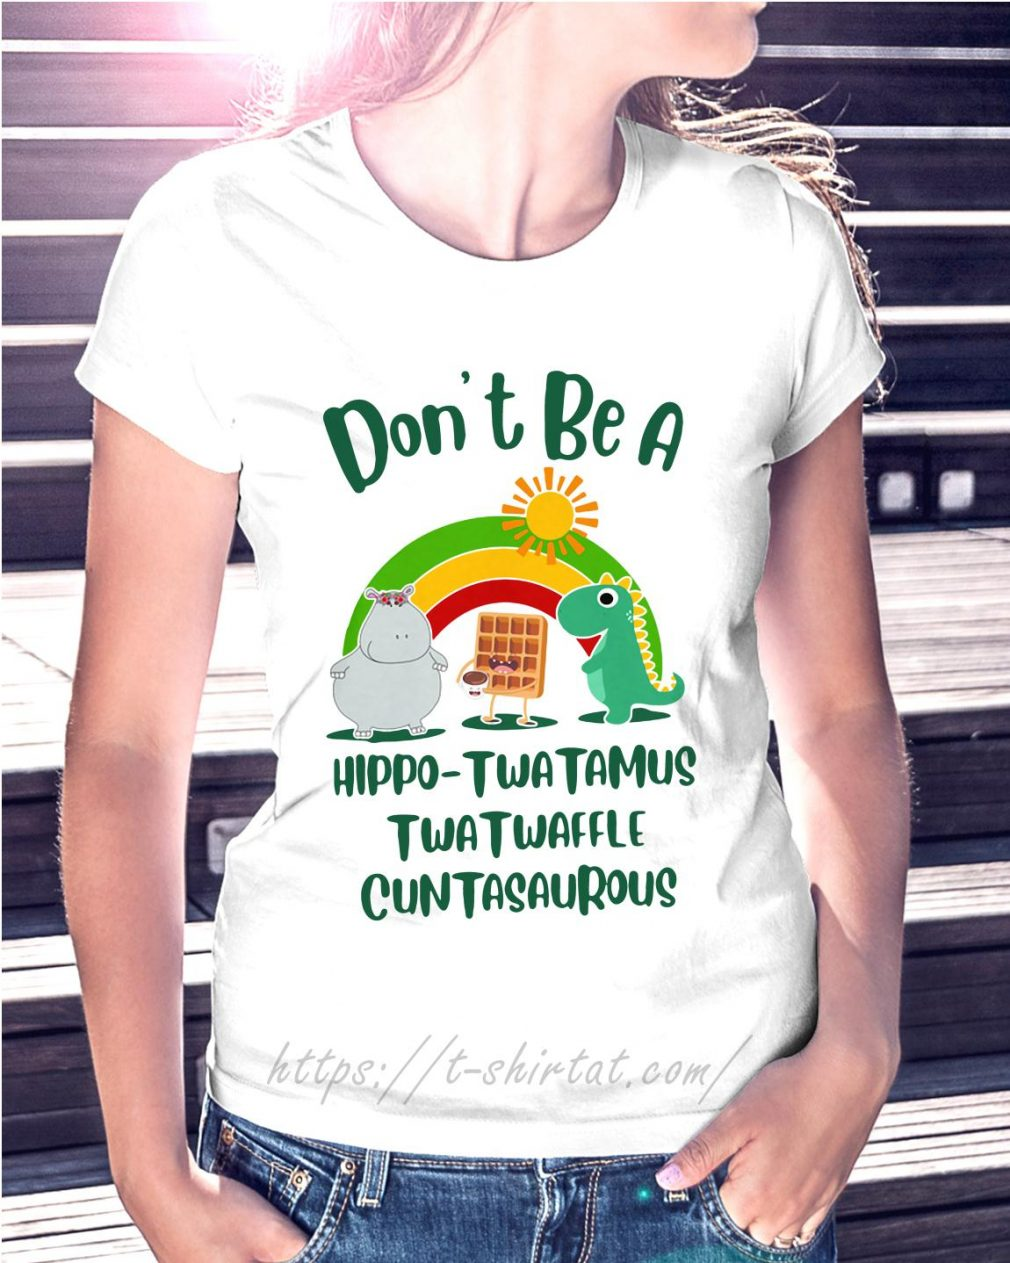 Don't be a Hippo Twatamus Twatwaffle cuntasaurous Ladies Tee